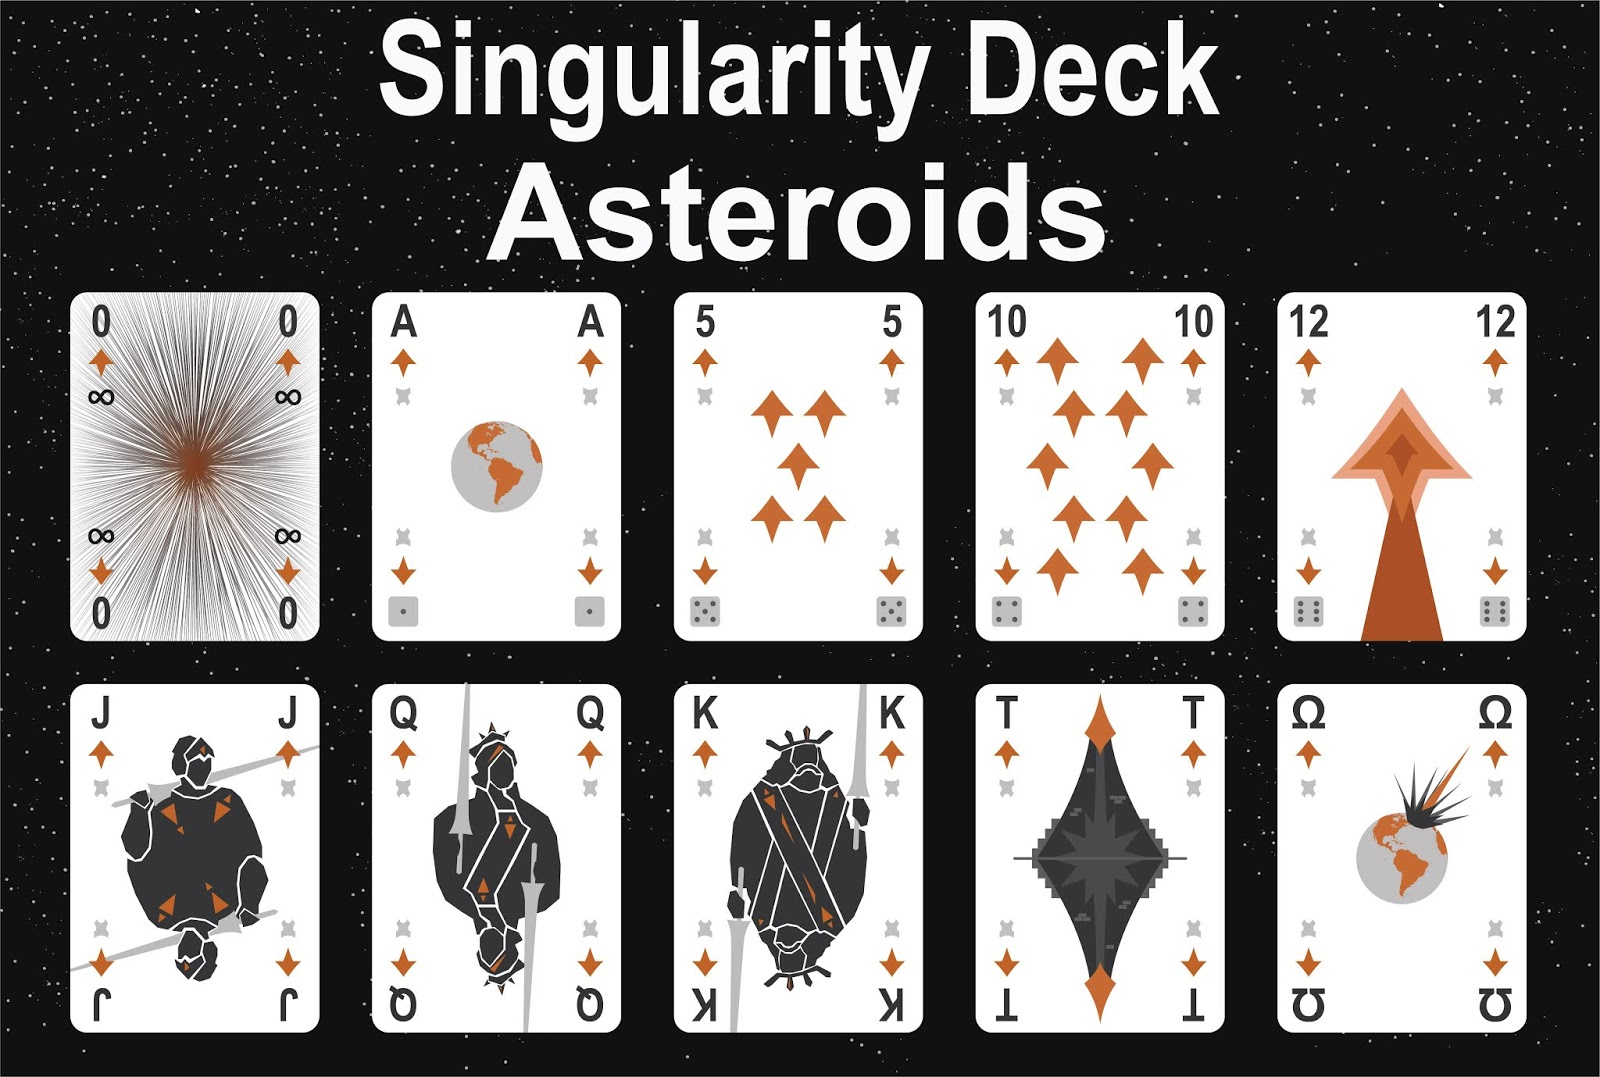 The Singularity Deck - Asteroids Art